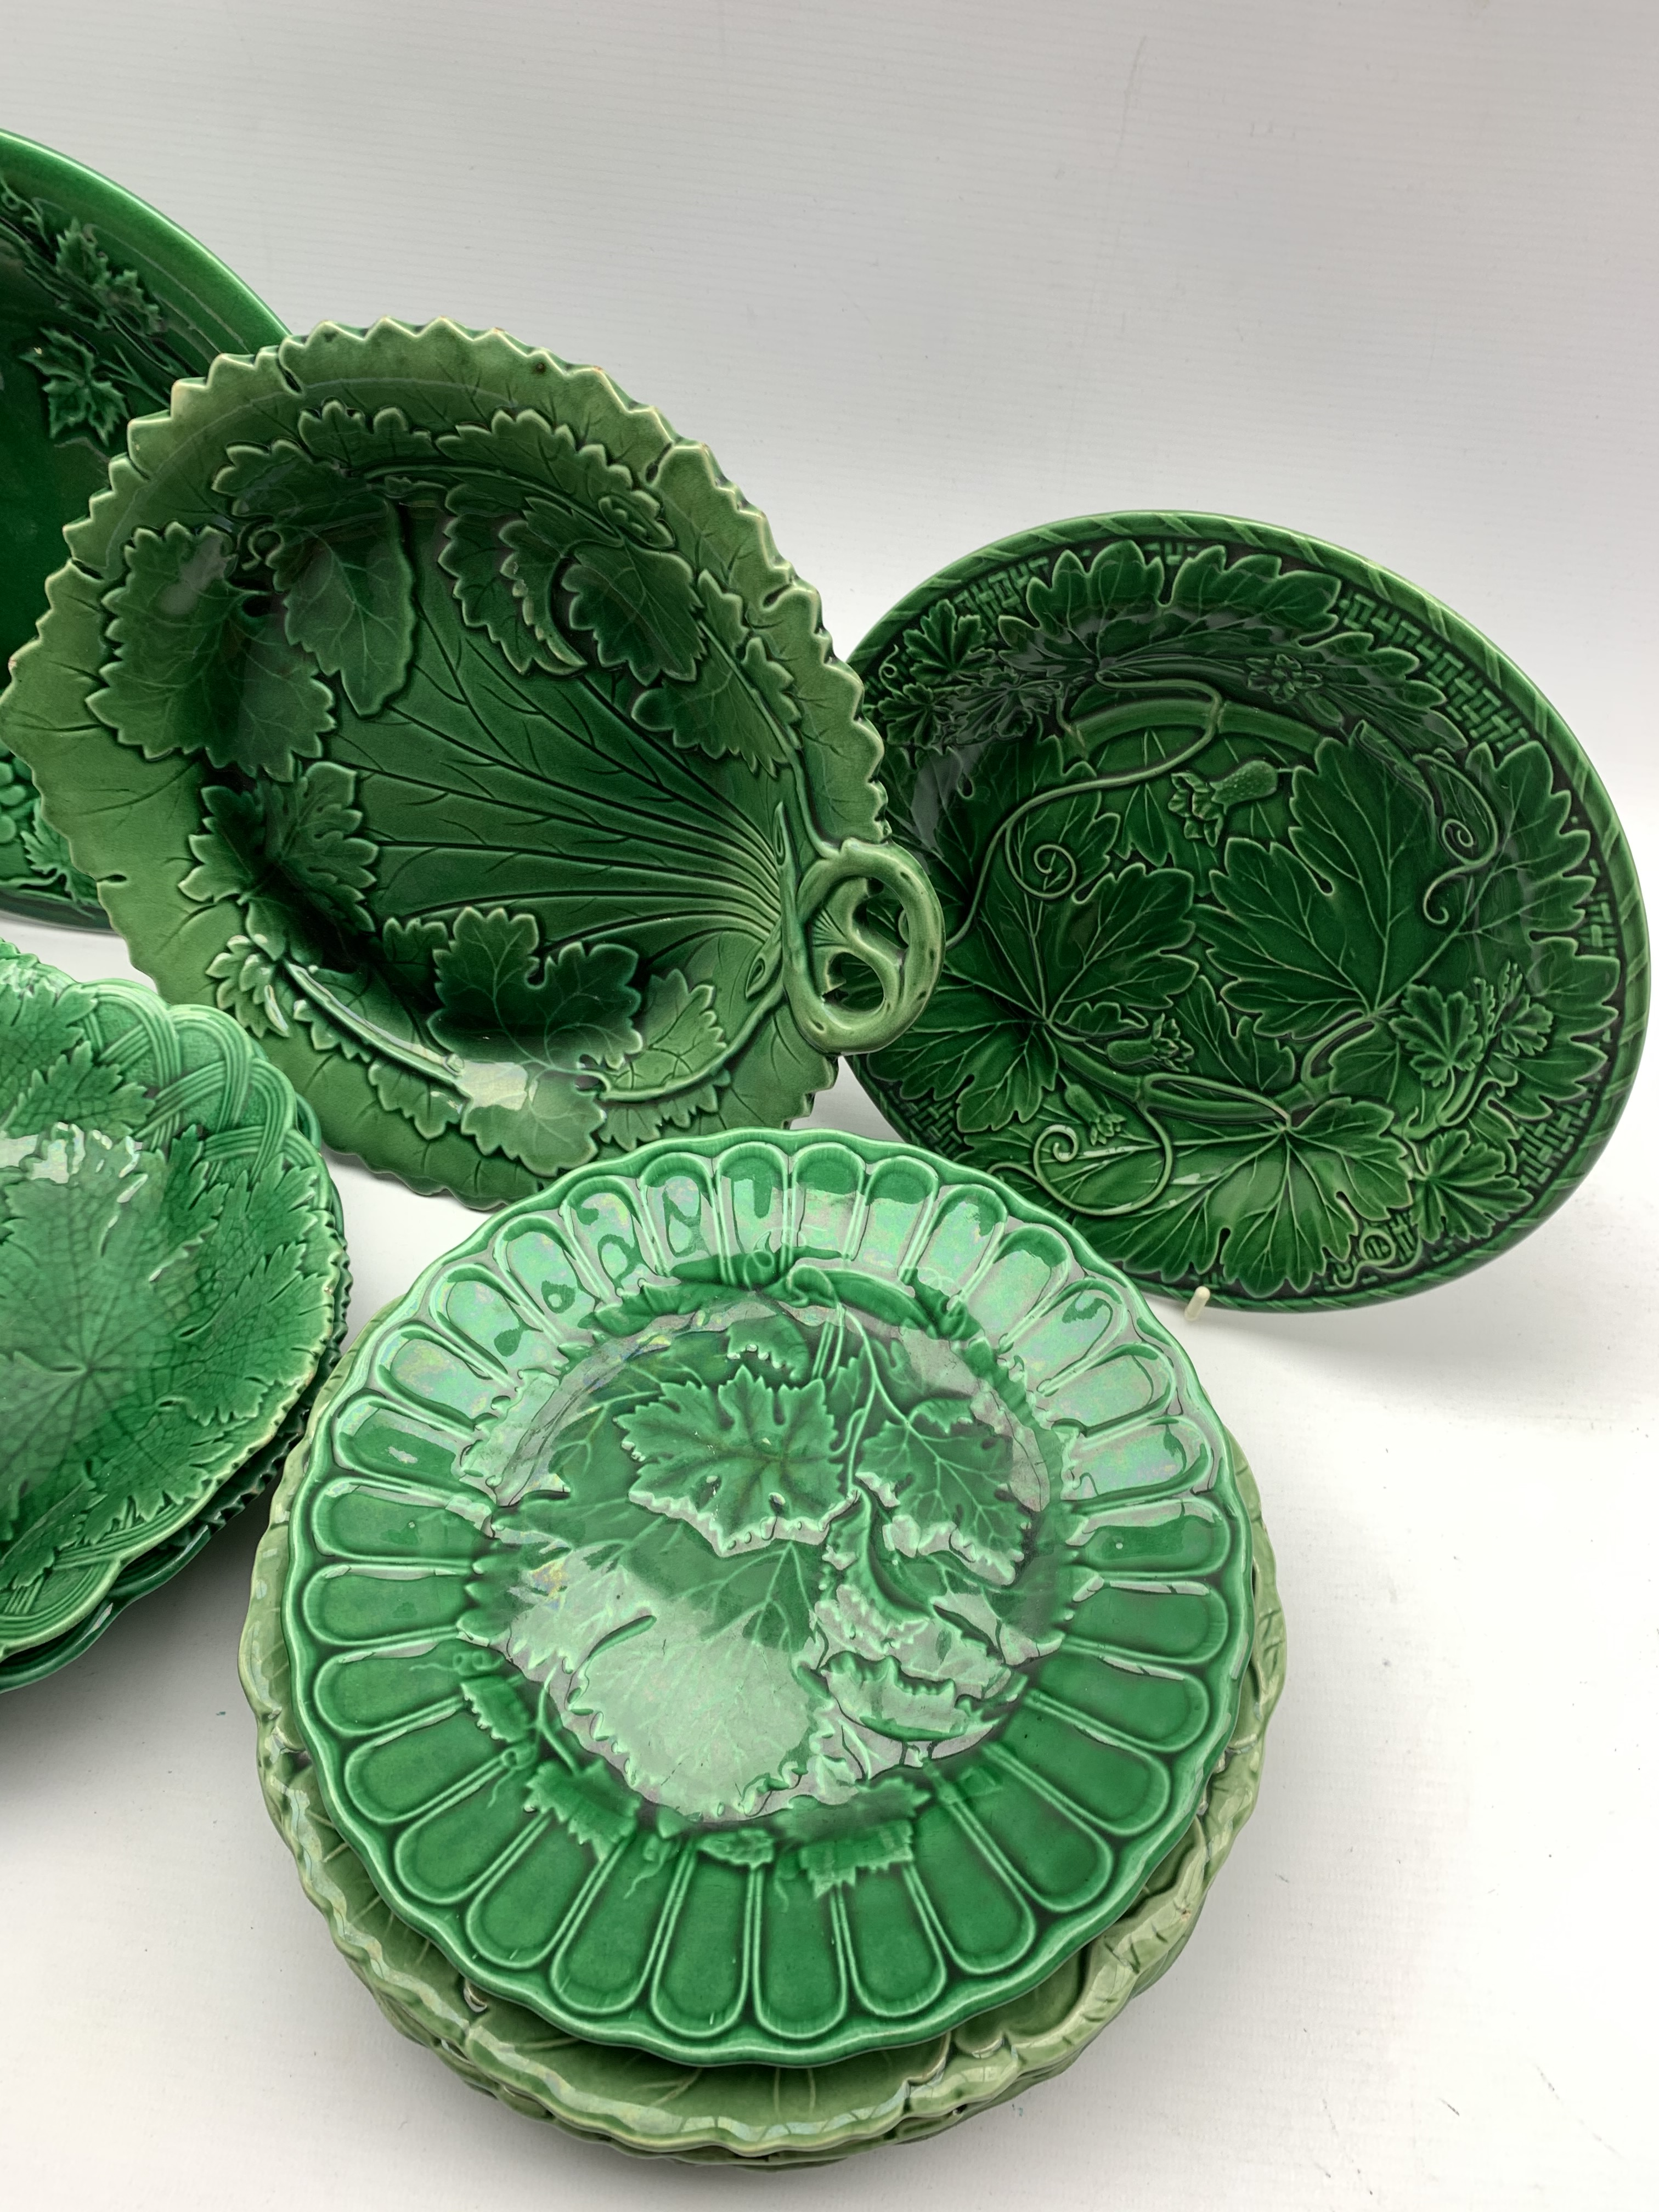 Pair of 19th century Wedgwood green glazed leaf moulded oval shallow dishes W28cm, pair of similar p - Image 4 of 5